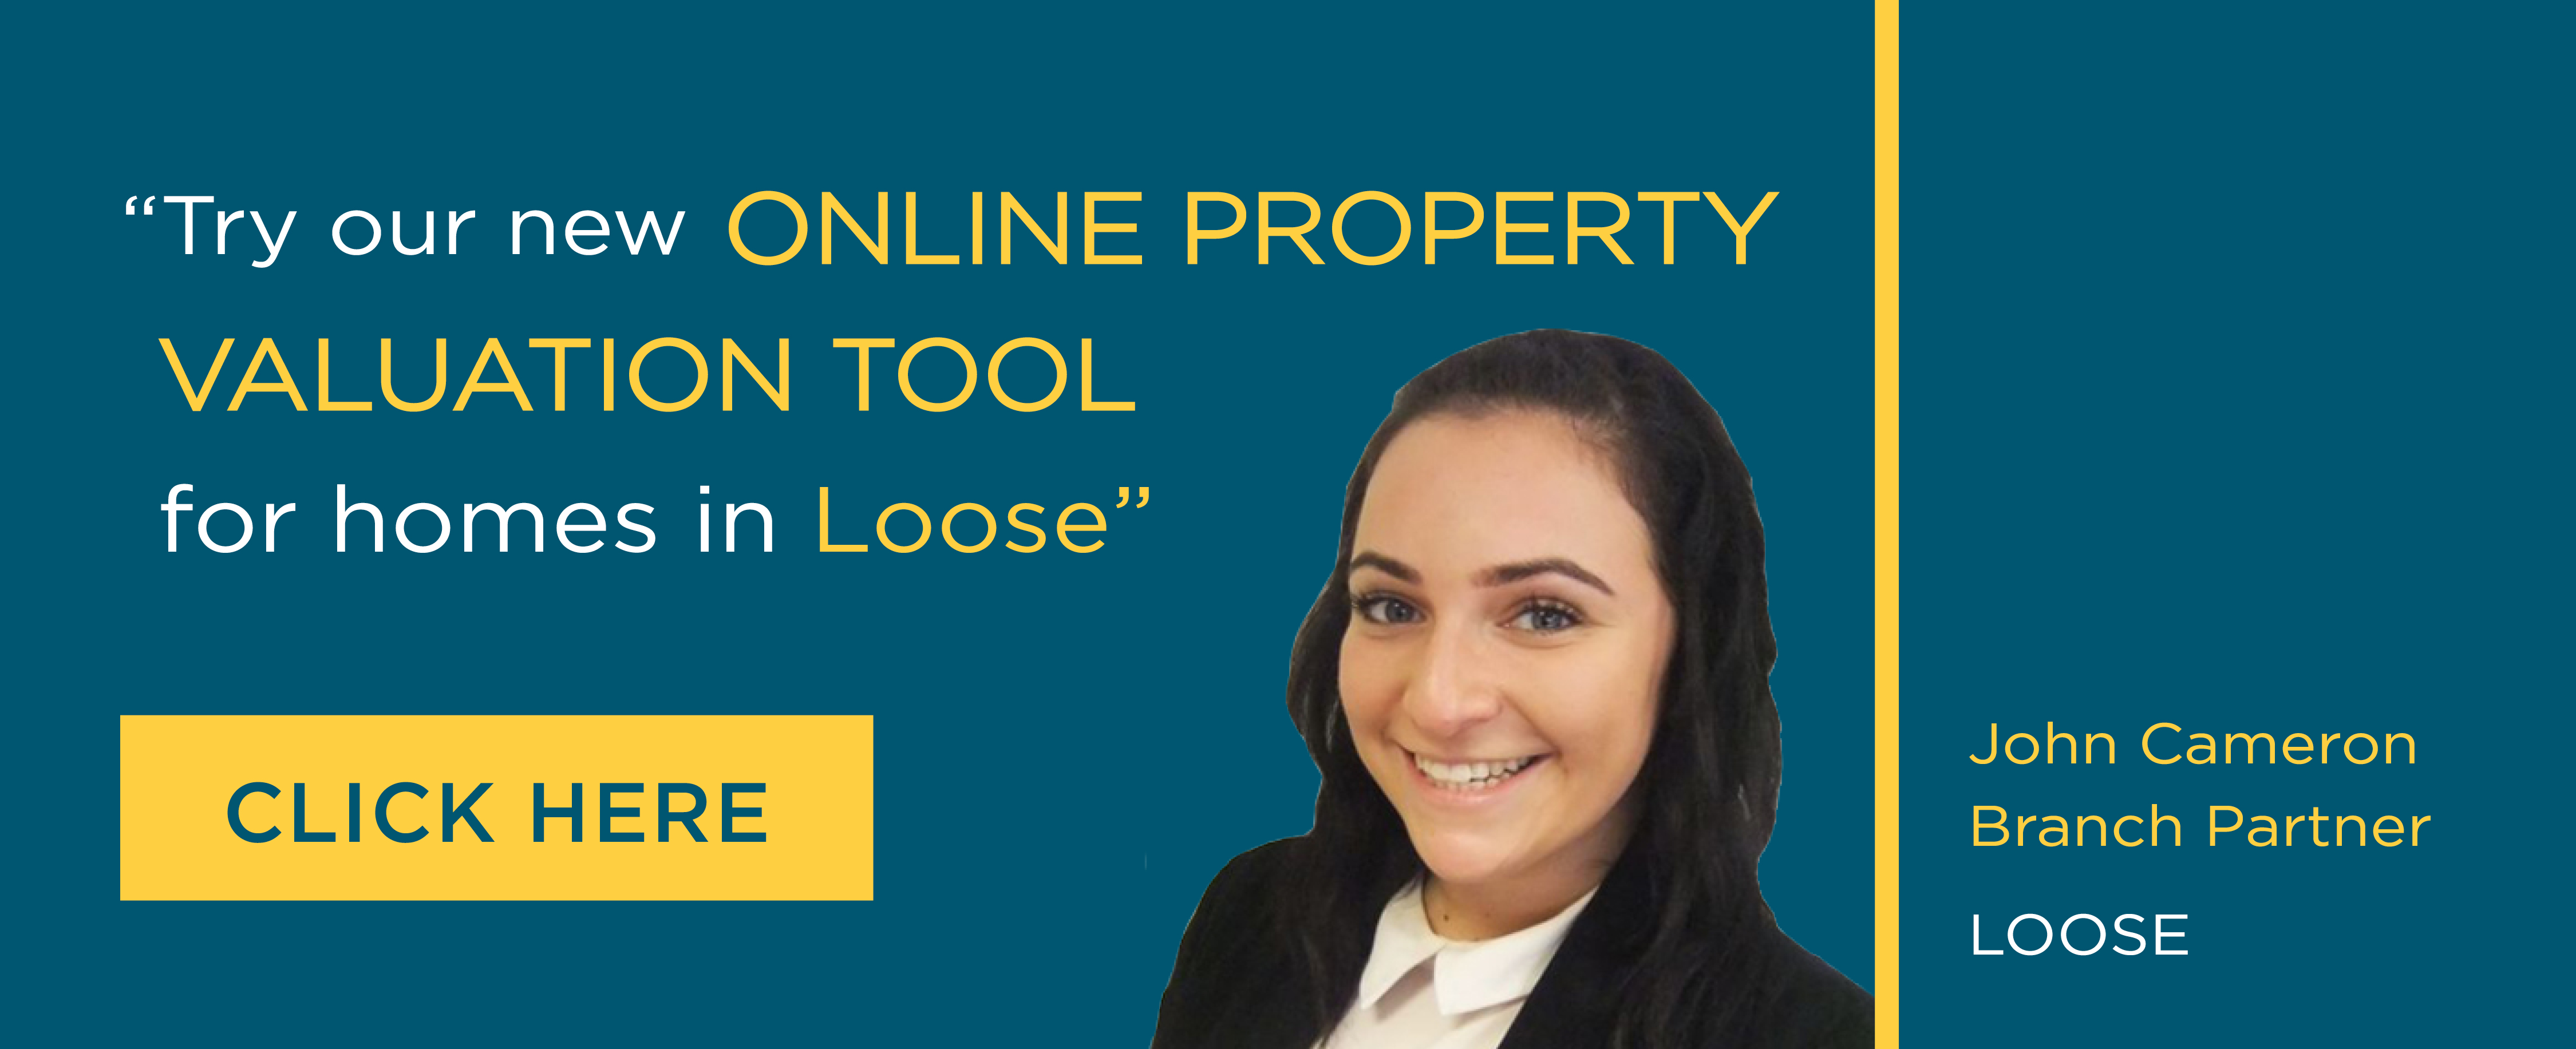 Online Valuation Tool website banner Loose